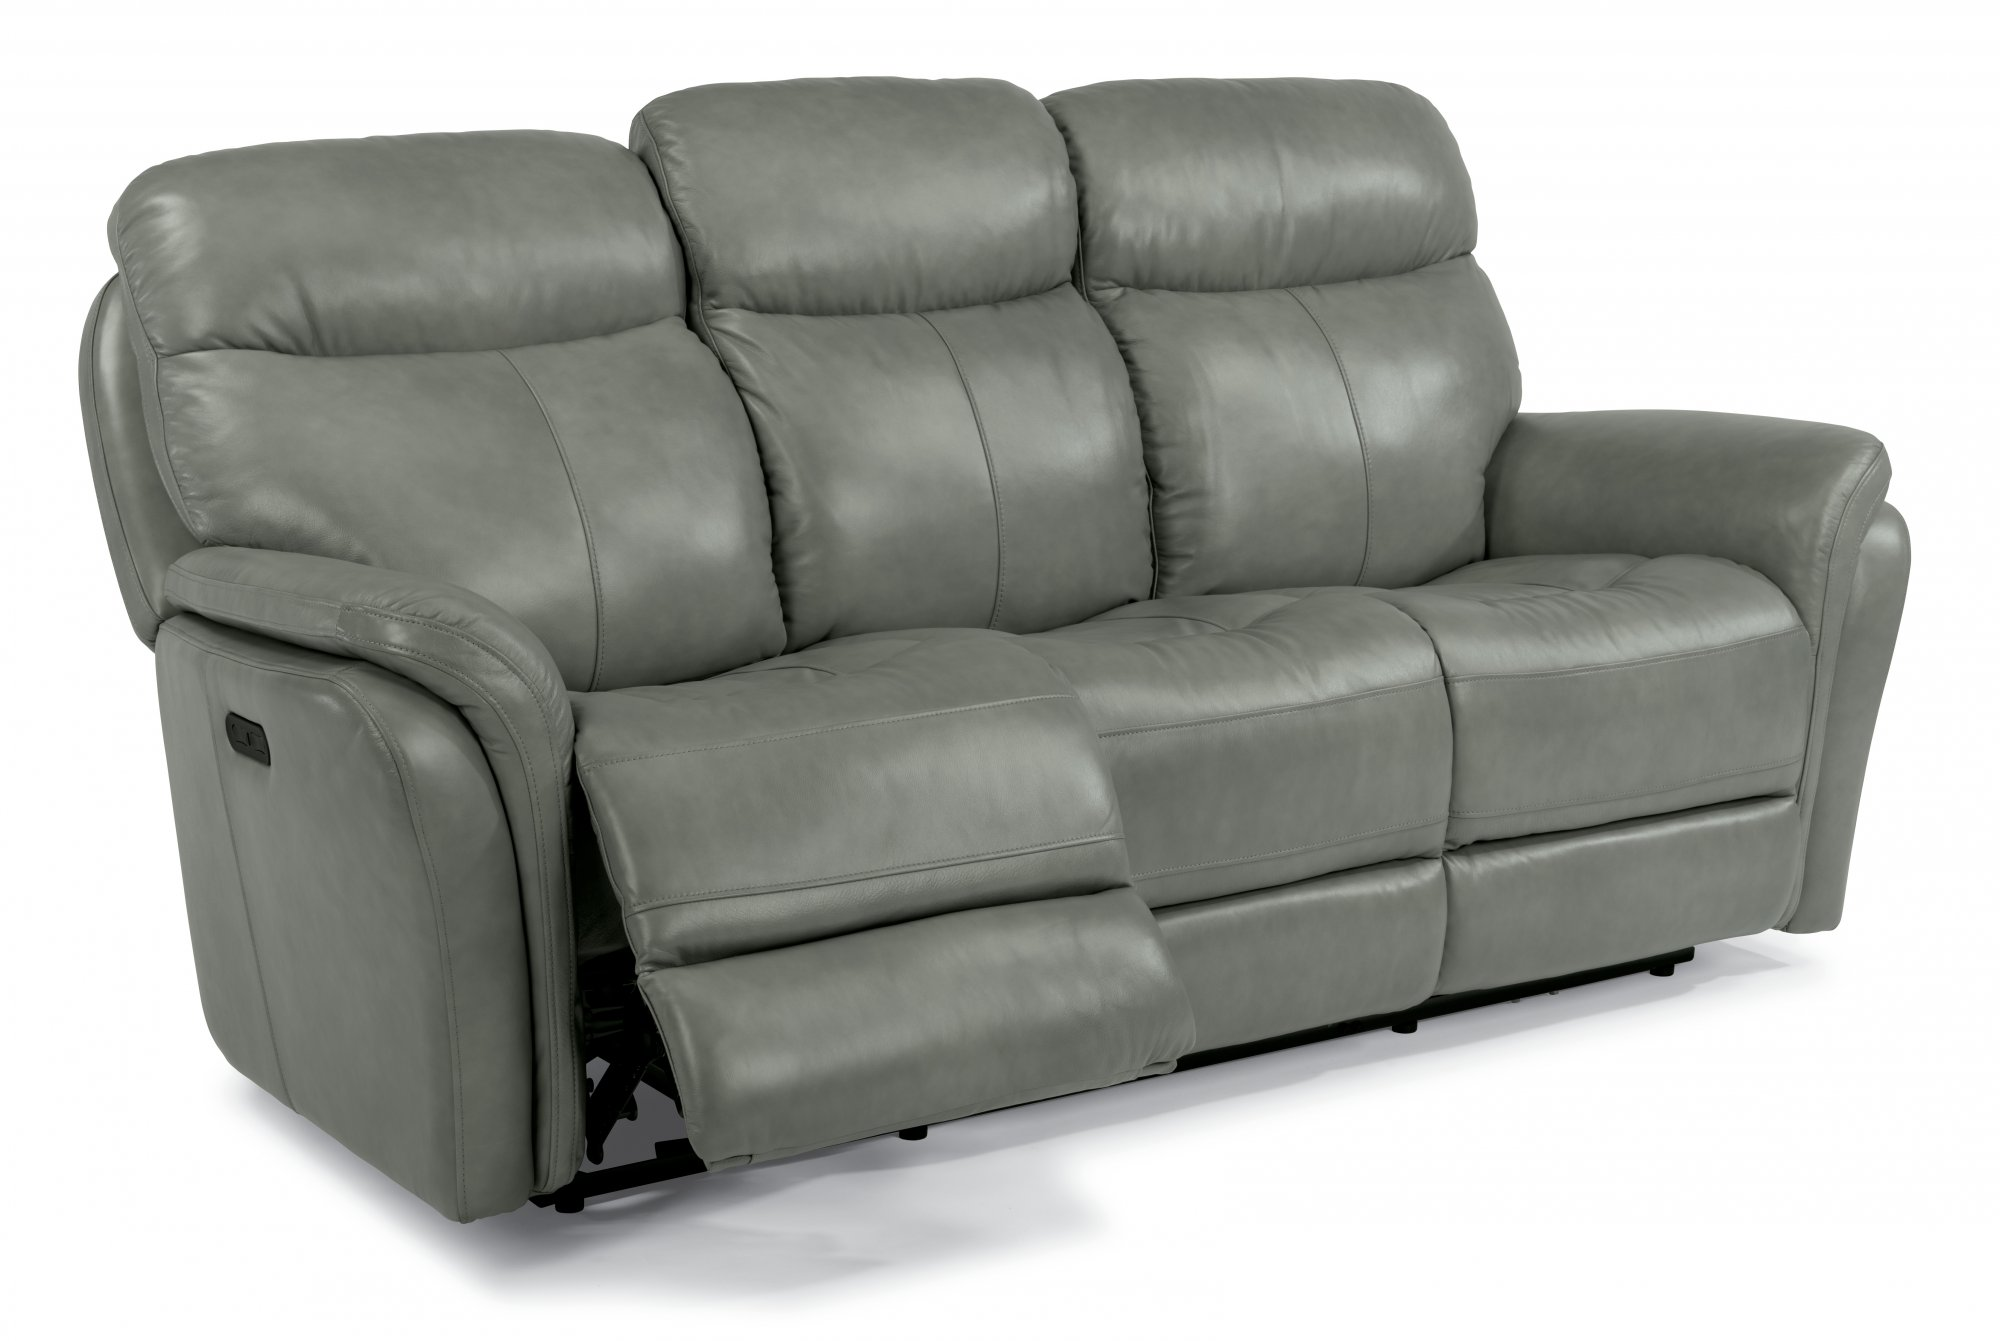 Leather Power Reclining Sofa with Power Headrests  sc 1 st  Flexsteel : leather couch with recliners - islam-shia.org